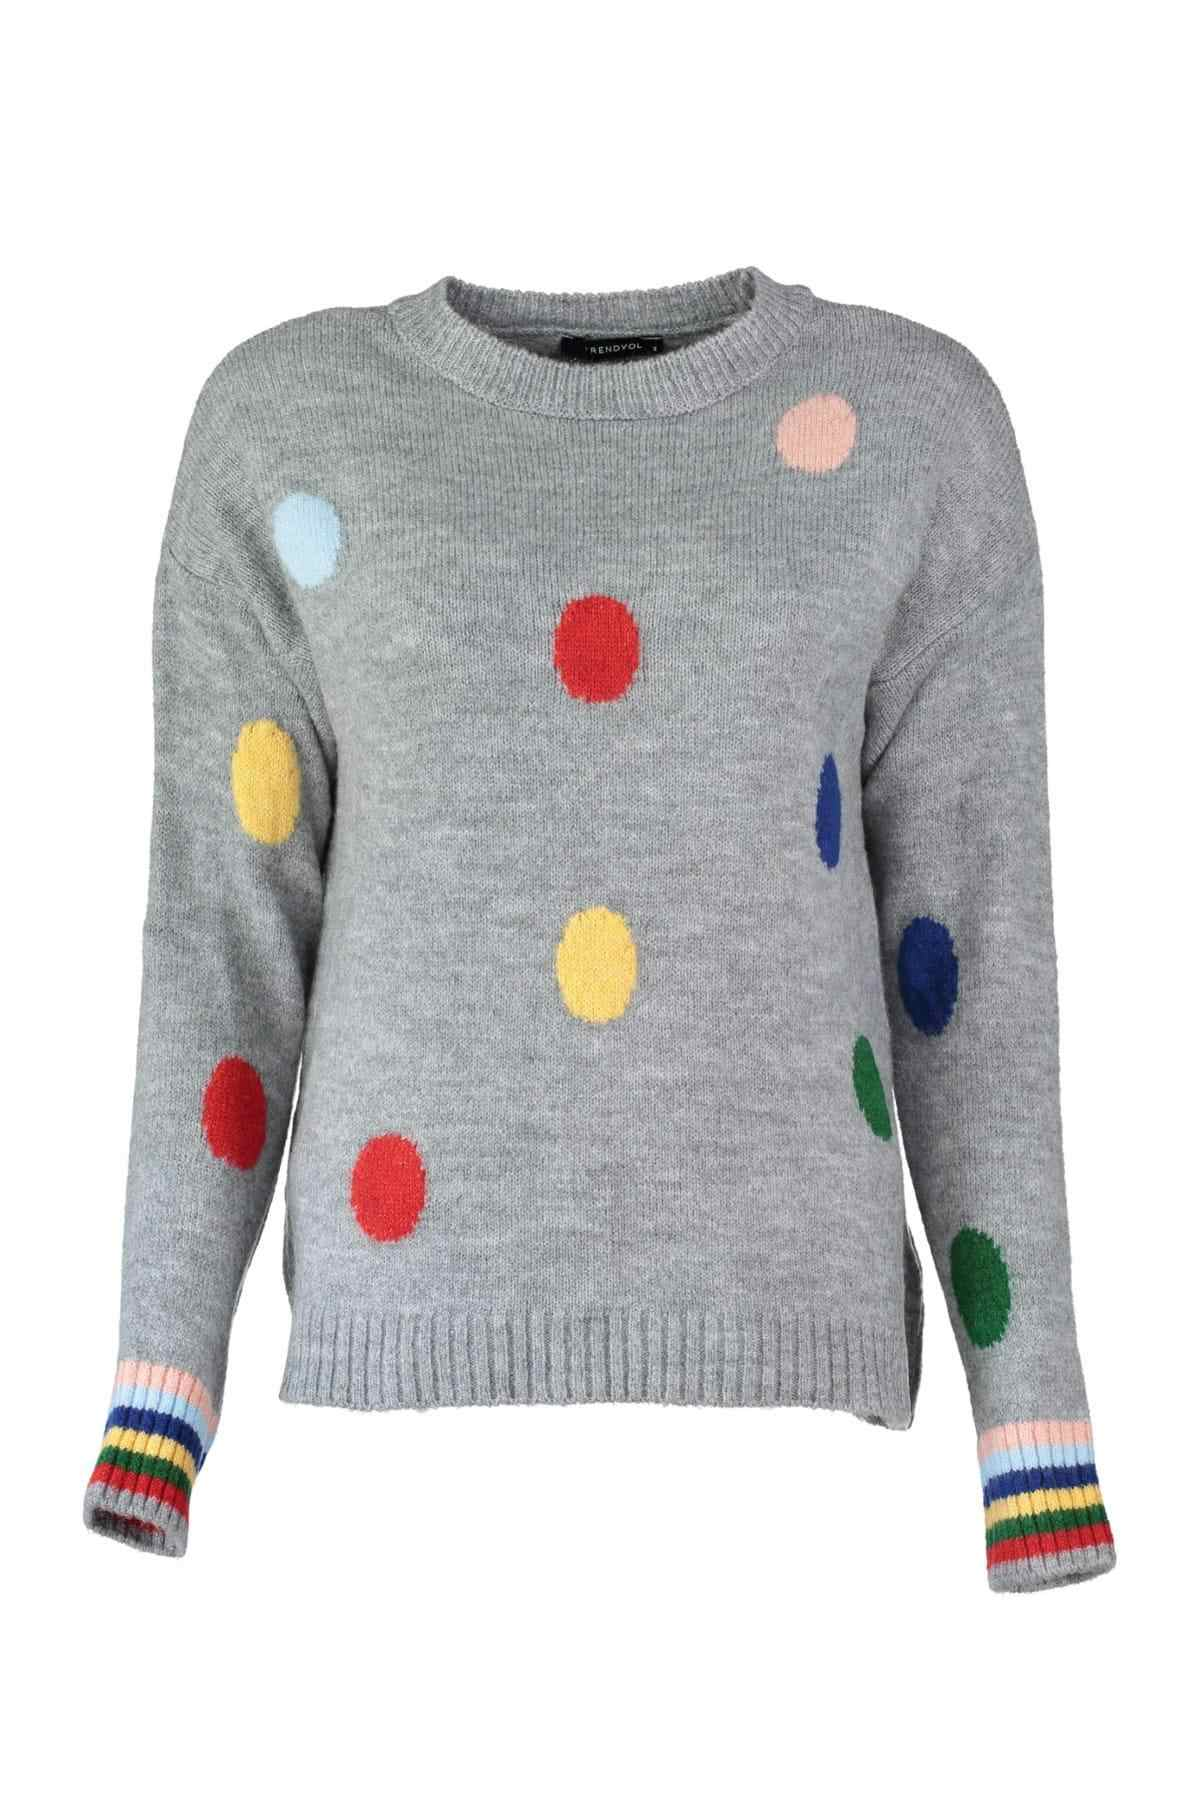 Trendyol WOMEN-Gray Polka Dot Sweater Sweater TWOAW20FV0039